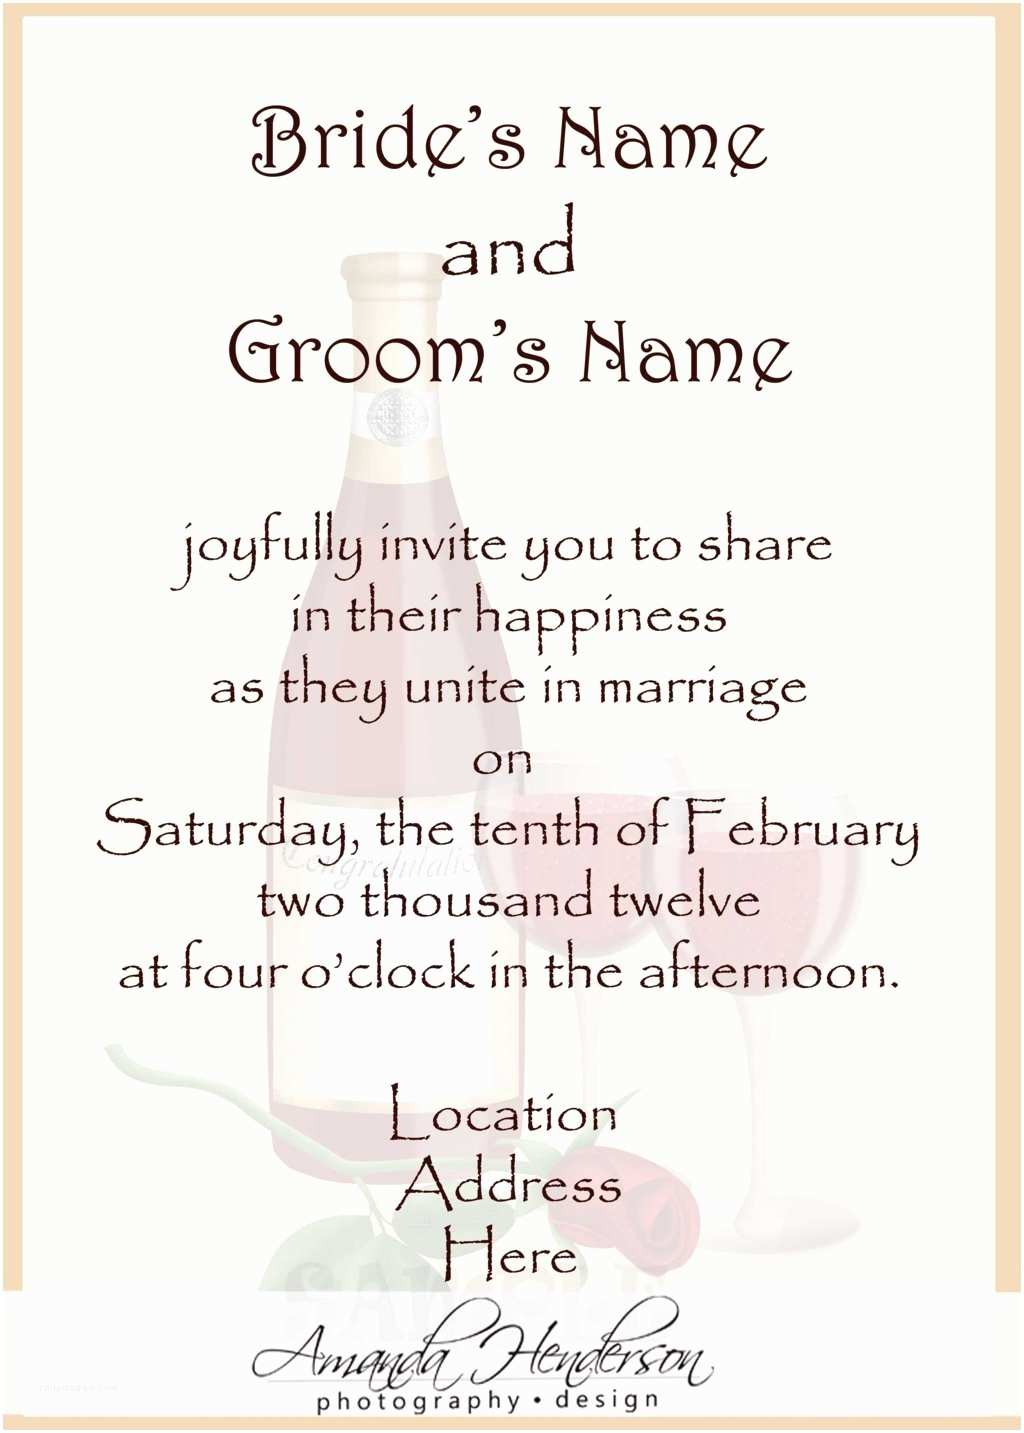 Wedding Invitation Wording Bride and Groom Hosting Wedding Structurewedding Structure